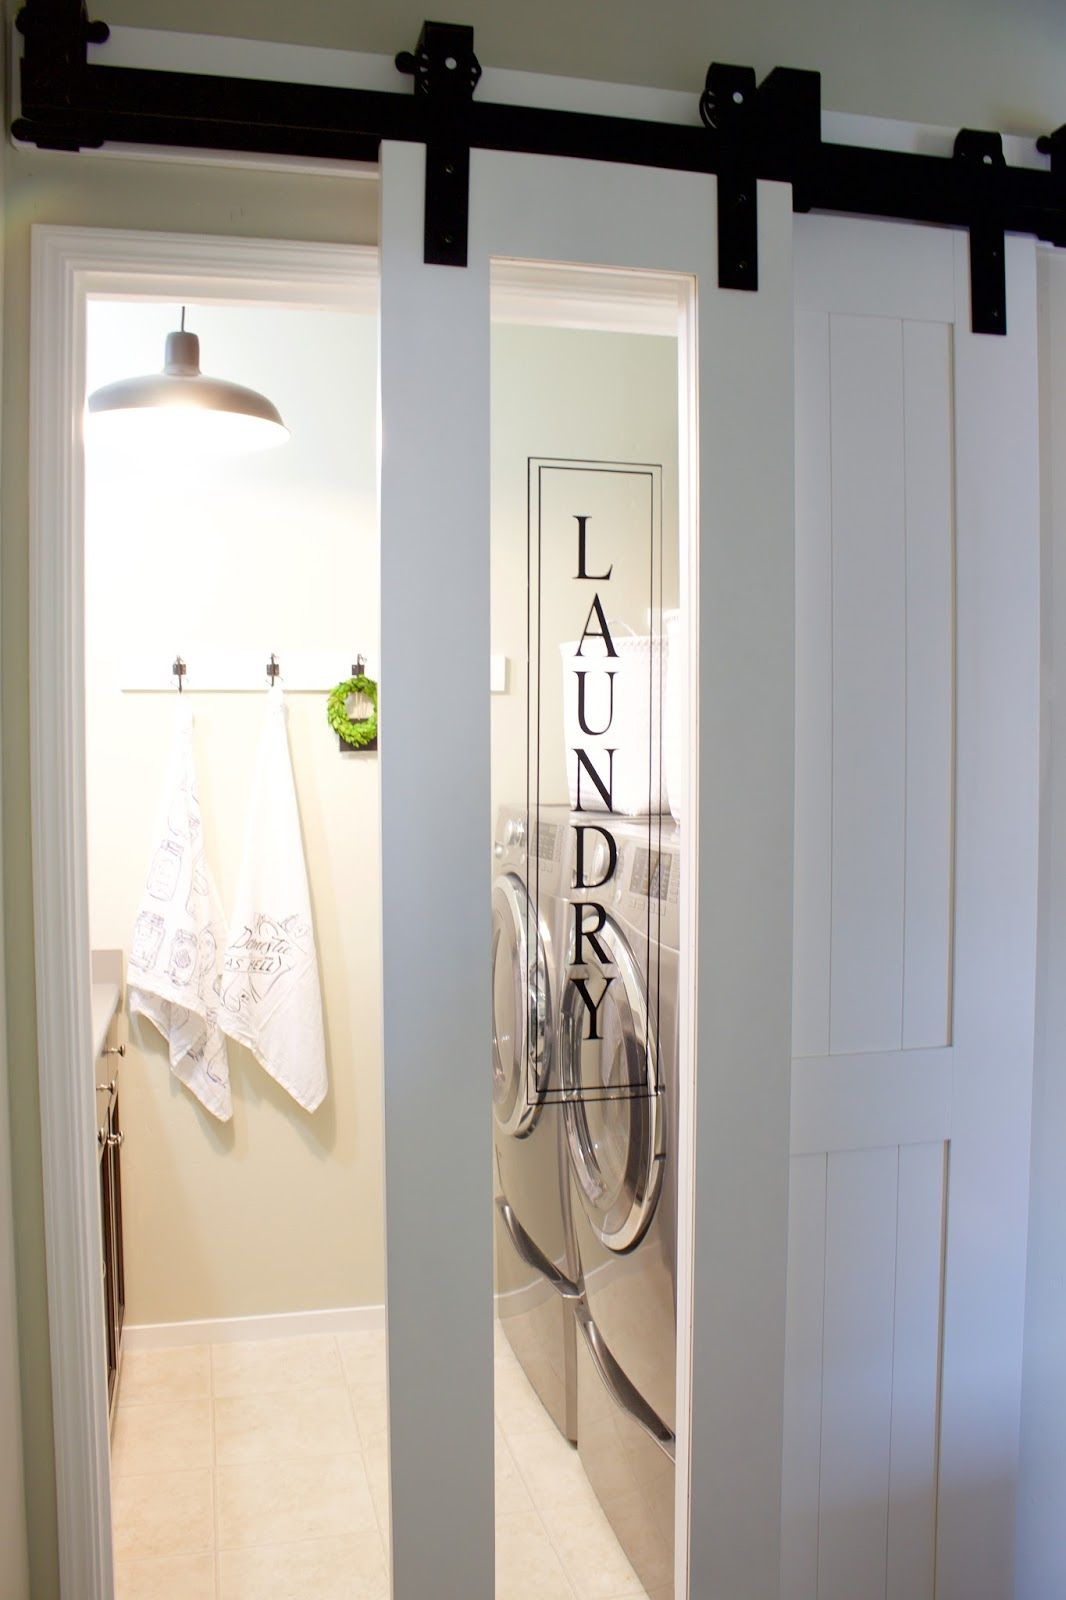 Exterior Glass Barn Doors the finishing touch-a sliding barn door for the laundry room